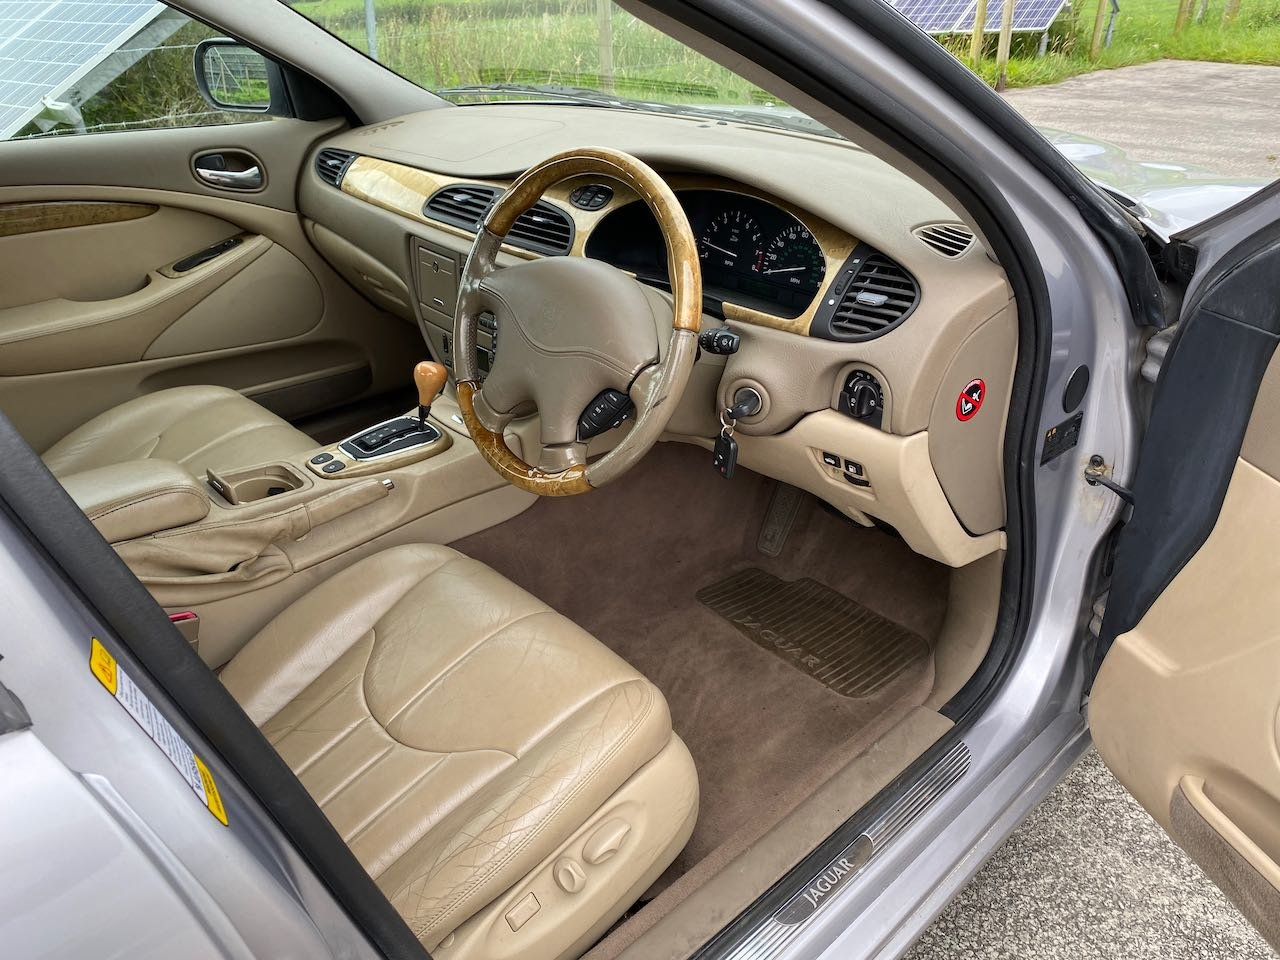 2000 Immaculate, low milage, 3 litre S-Type SOLD (picture 5 of 6)